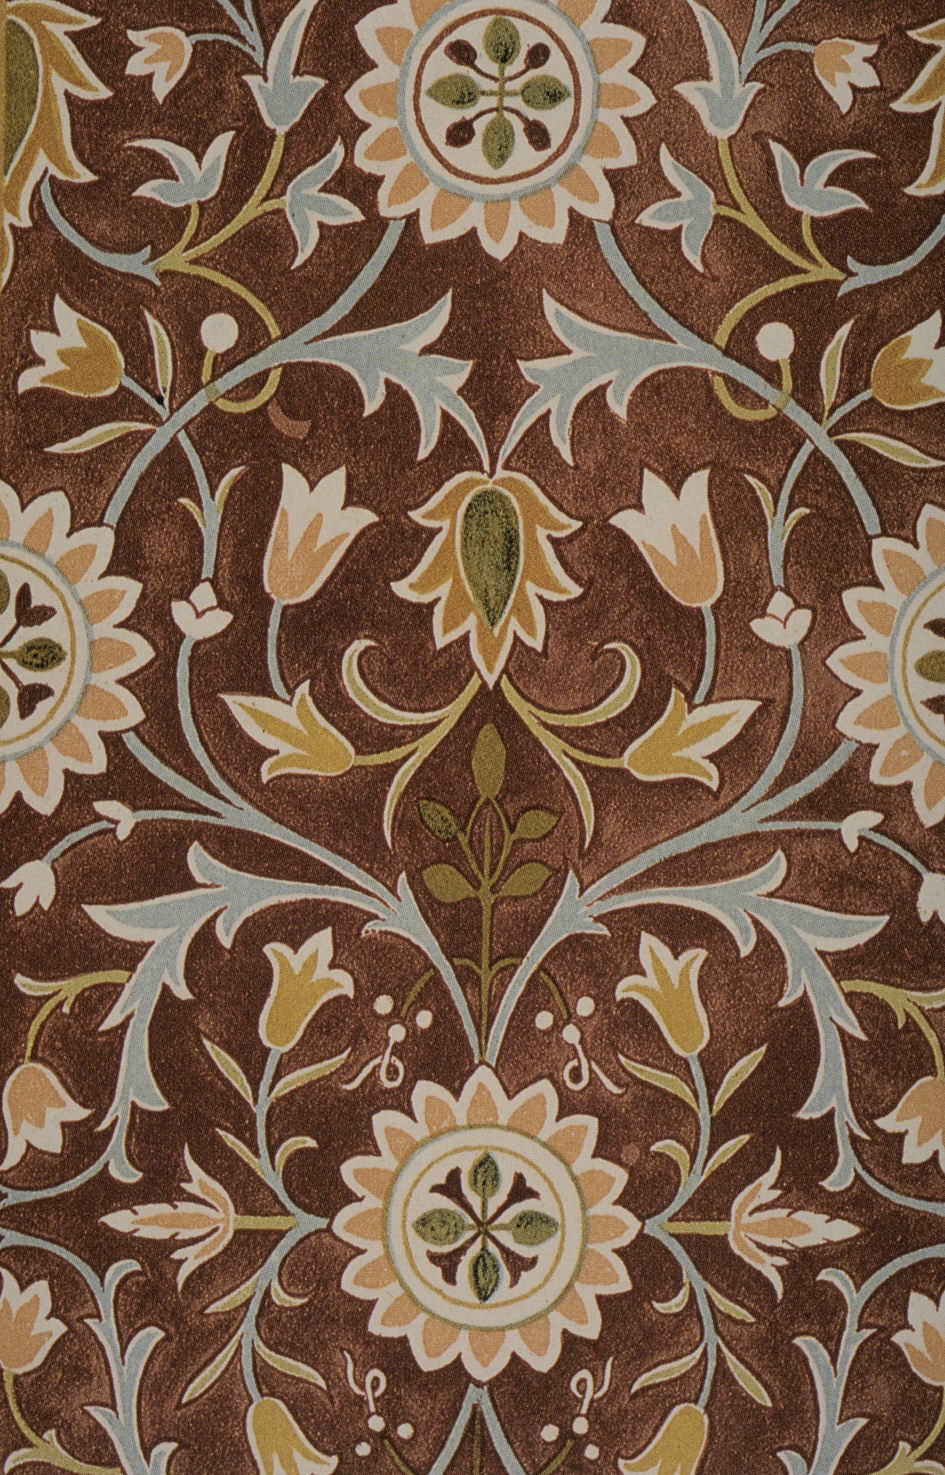 Remarkable Little Flower by William Morris Carpet 945 x 1475 · 495 kB · jpeg